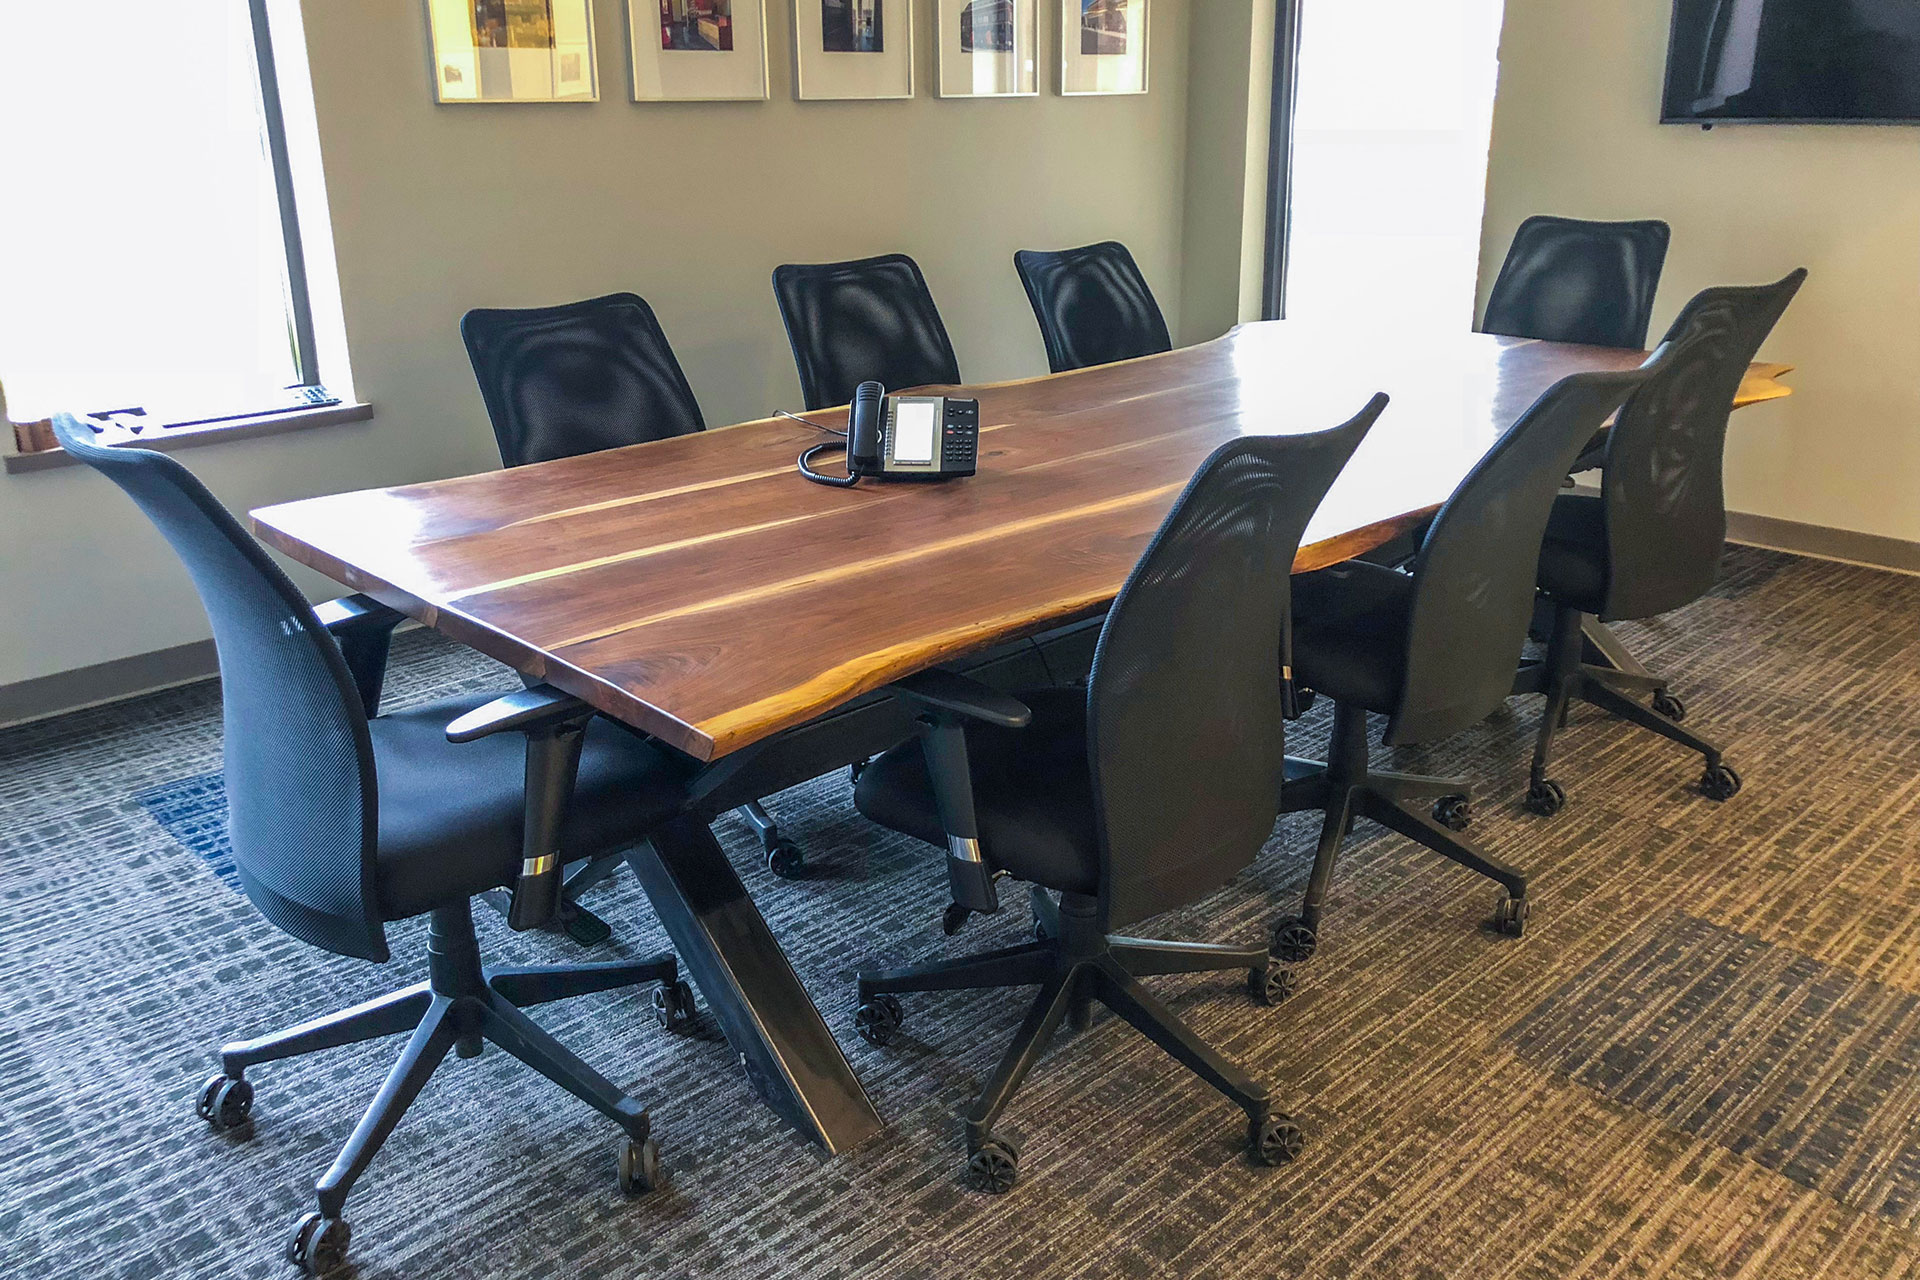 Walnut live-edge custom table top with steel table base for boardroom of corporate office space.